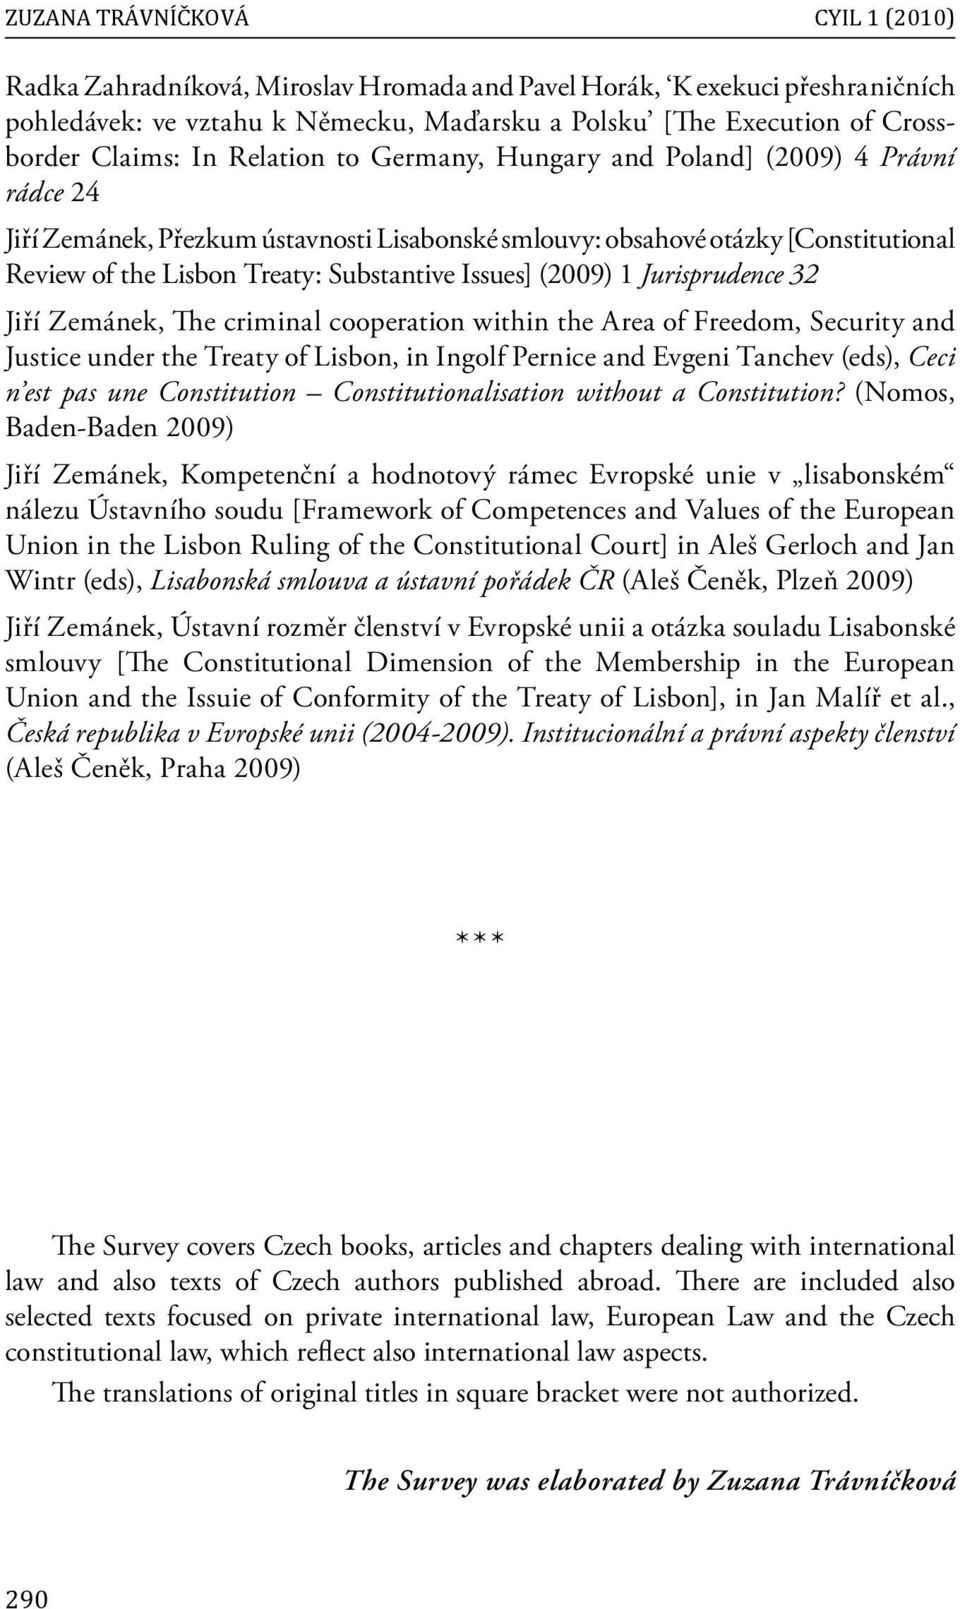 Issues] (2009) 1 Jurisprudence 32 Jiří Zemánek, The criminal cooperation within the Area of Freedom, Security and Justice under the Treaty of Lisbon, in Ingolf Pernice and Evgeni Tanchev (eds), Ceci